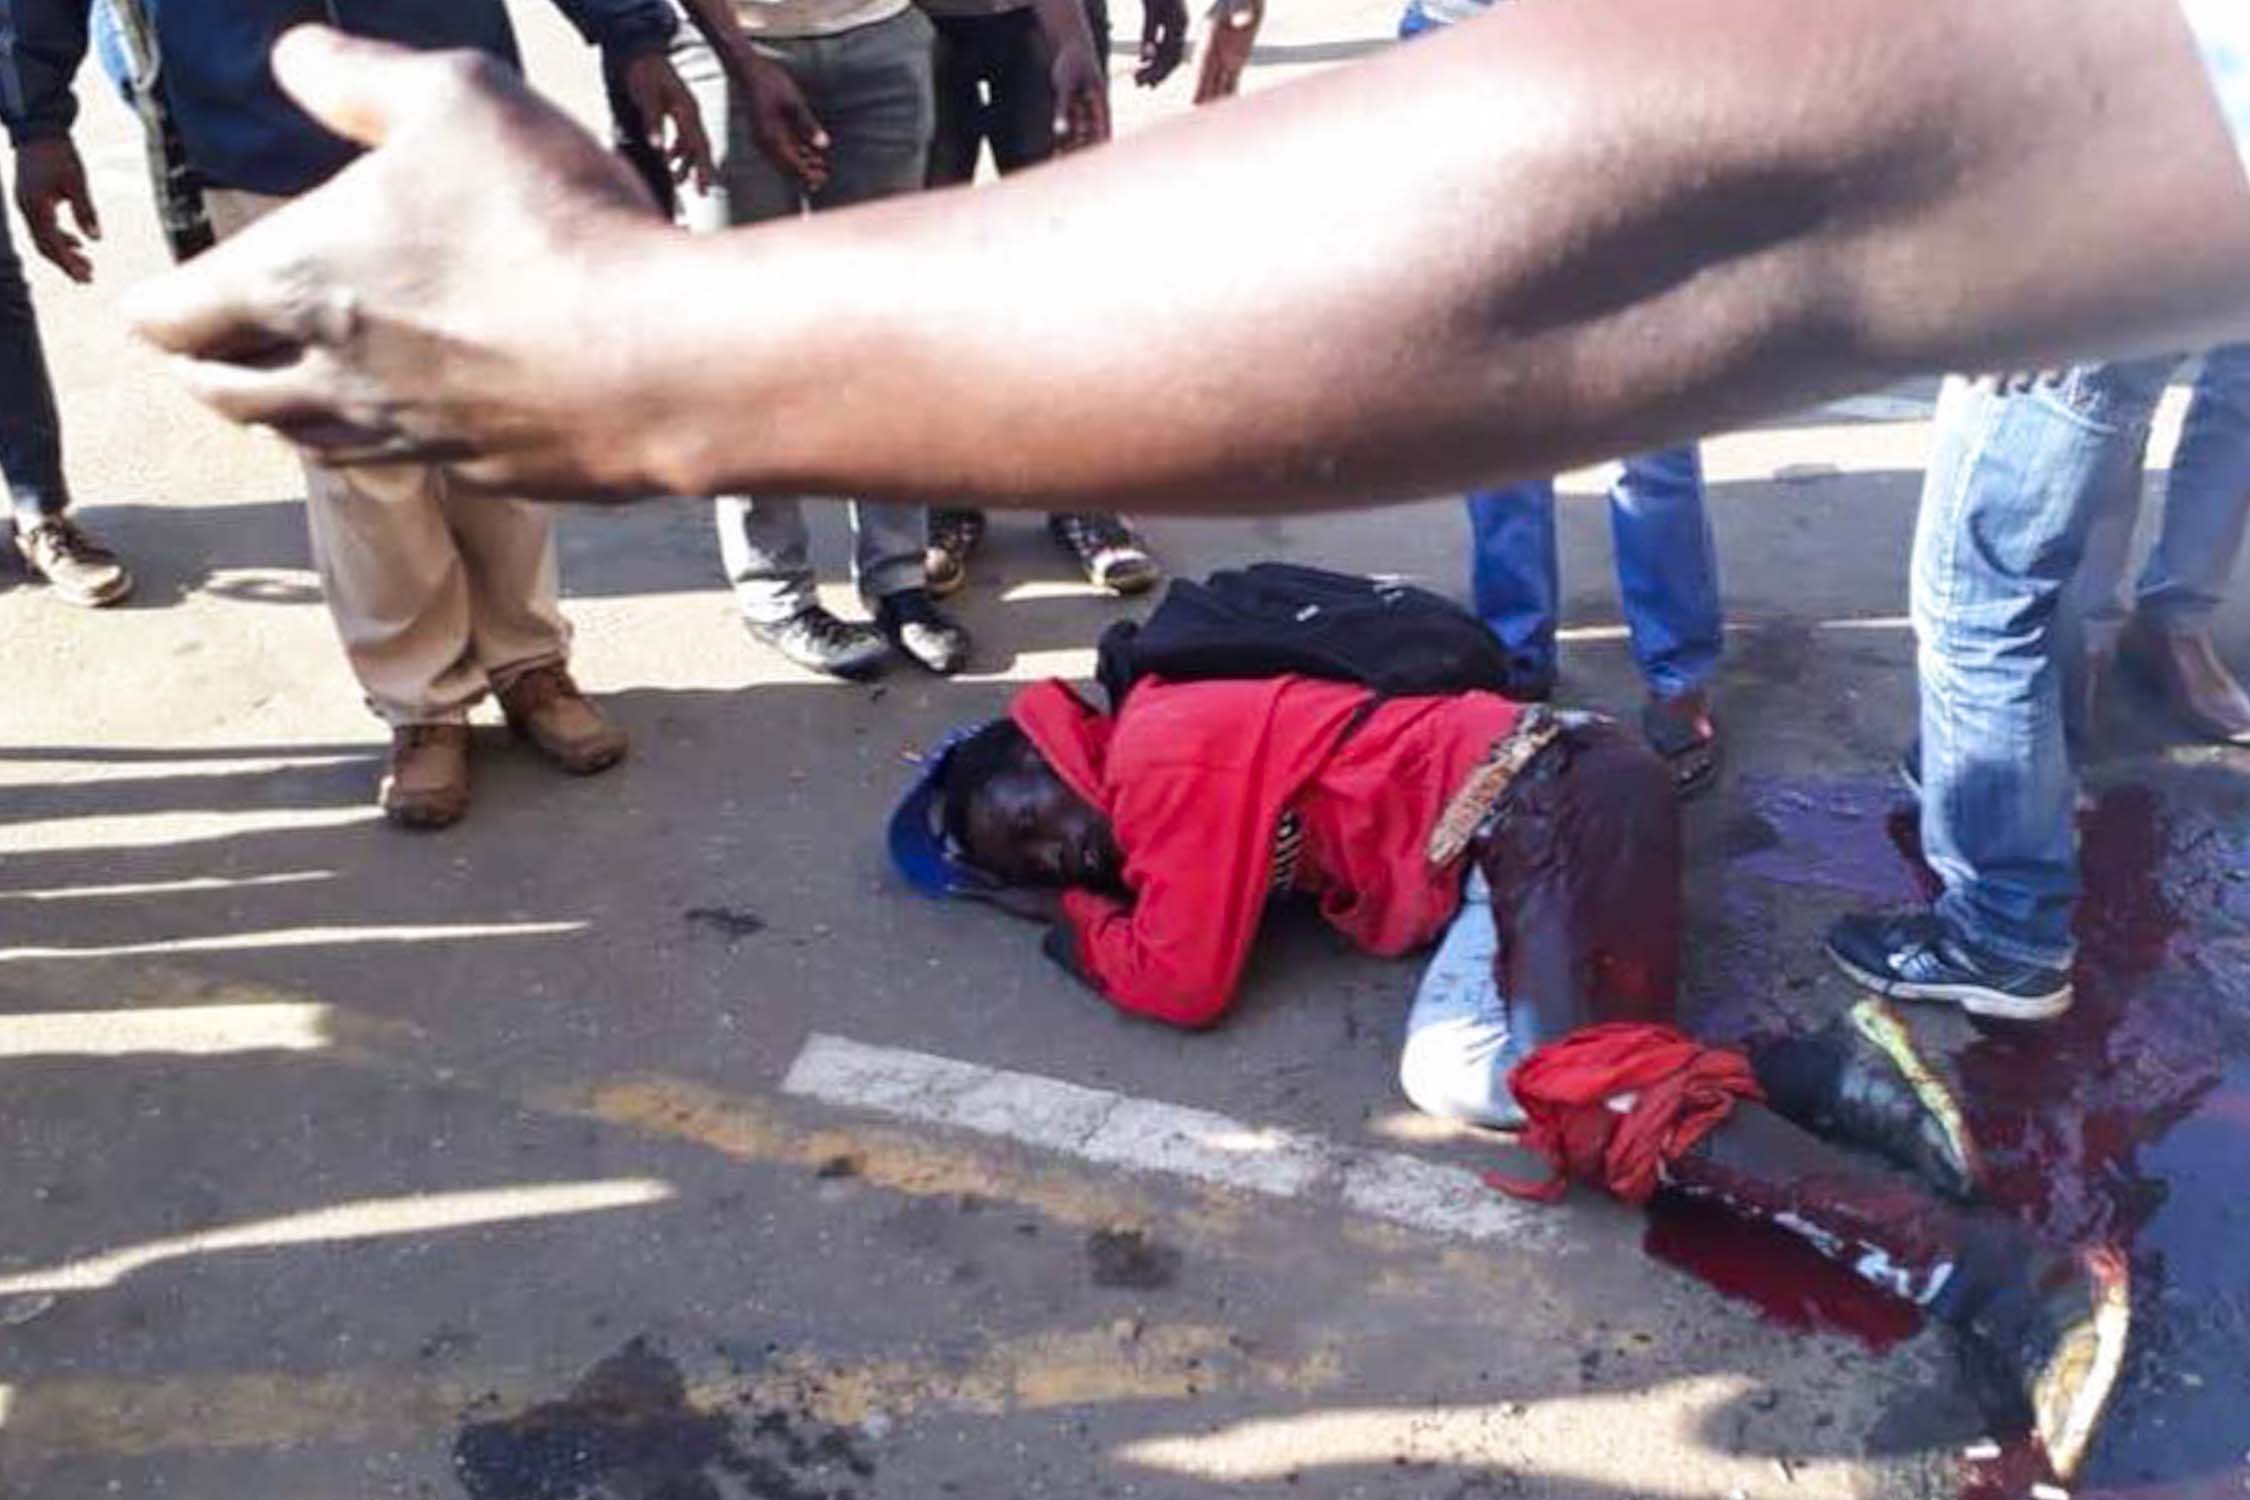 MDC supporter with leg wound after shooting